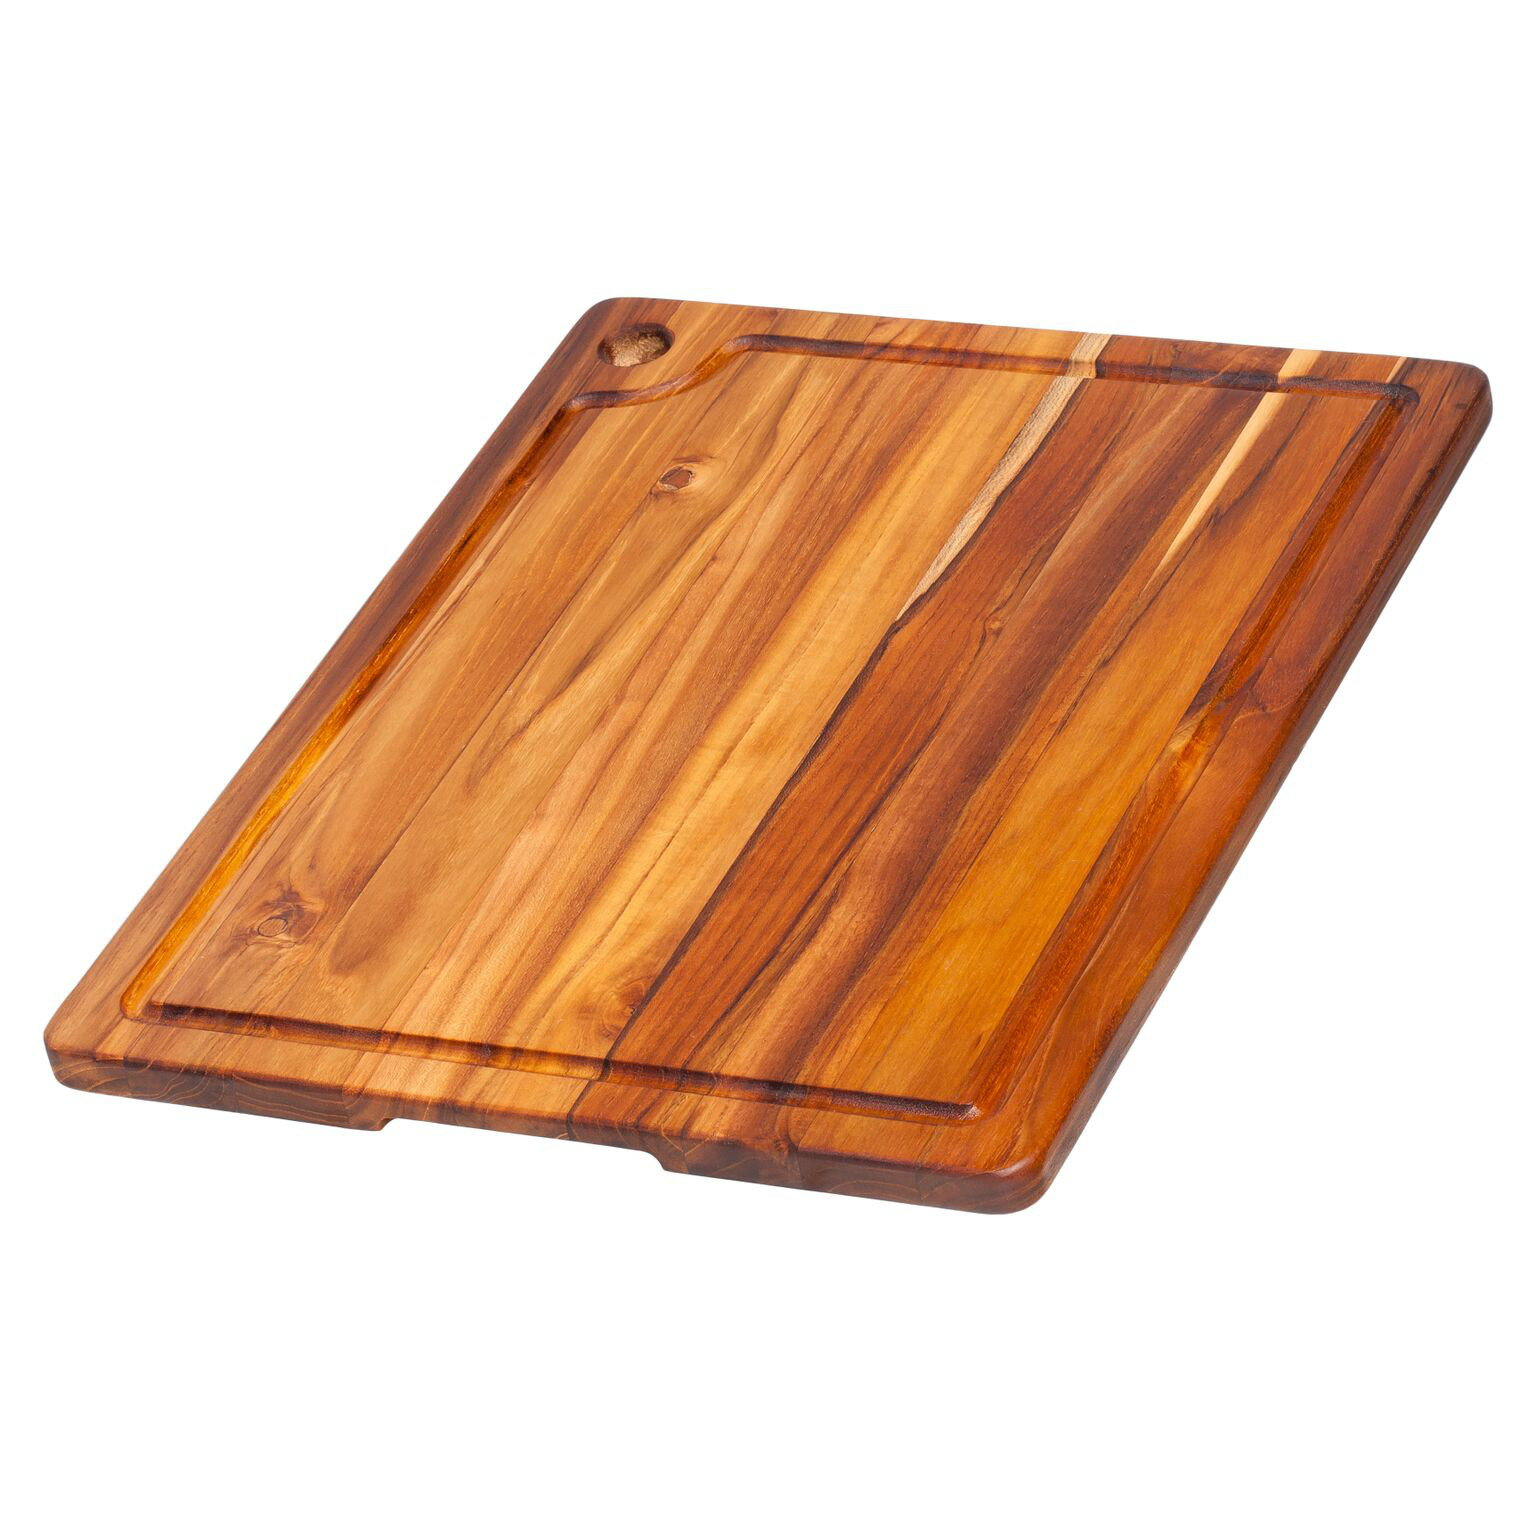 Teak Haus Edge Grain Marine Collection Boards 517 Corner Hole & Juice Groove 46x35,5x1,9